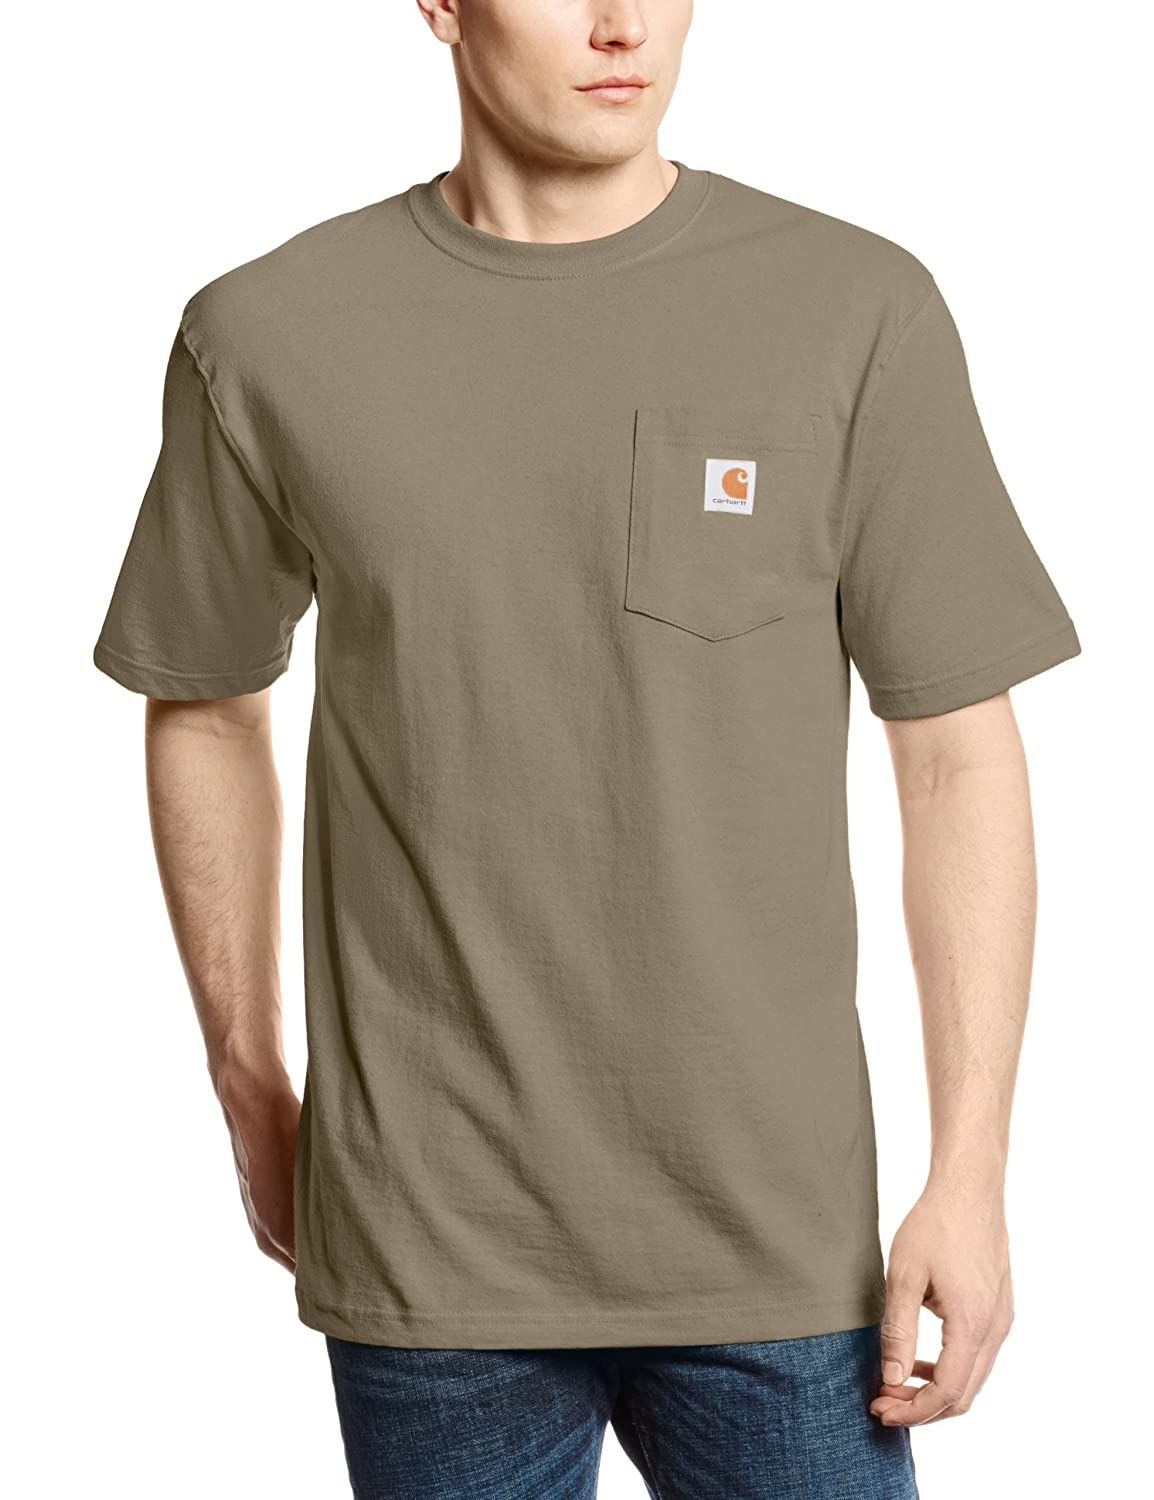 Shop for mens pocket tee shirt online at Target. Free shipping on purchases over $35 and save 5% every day with your Target REDcard.